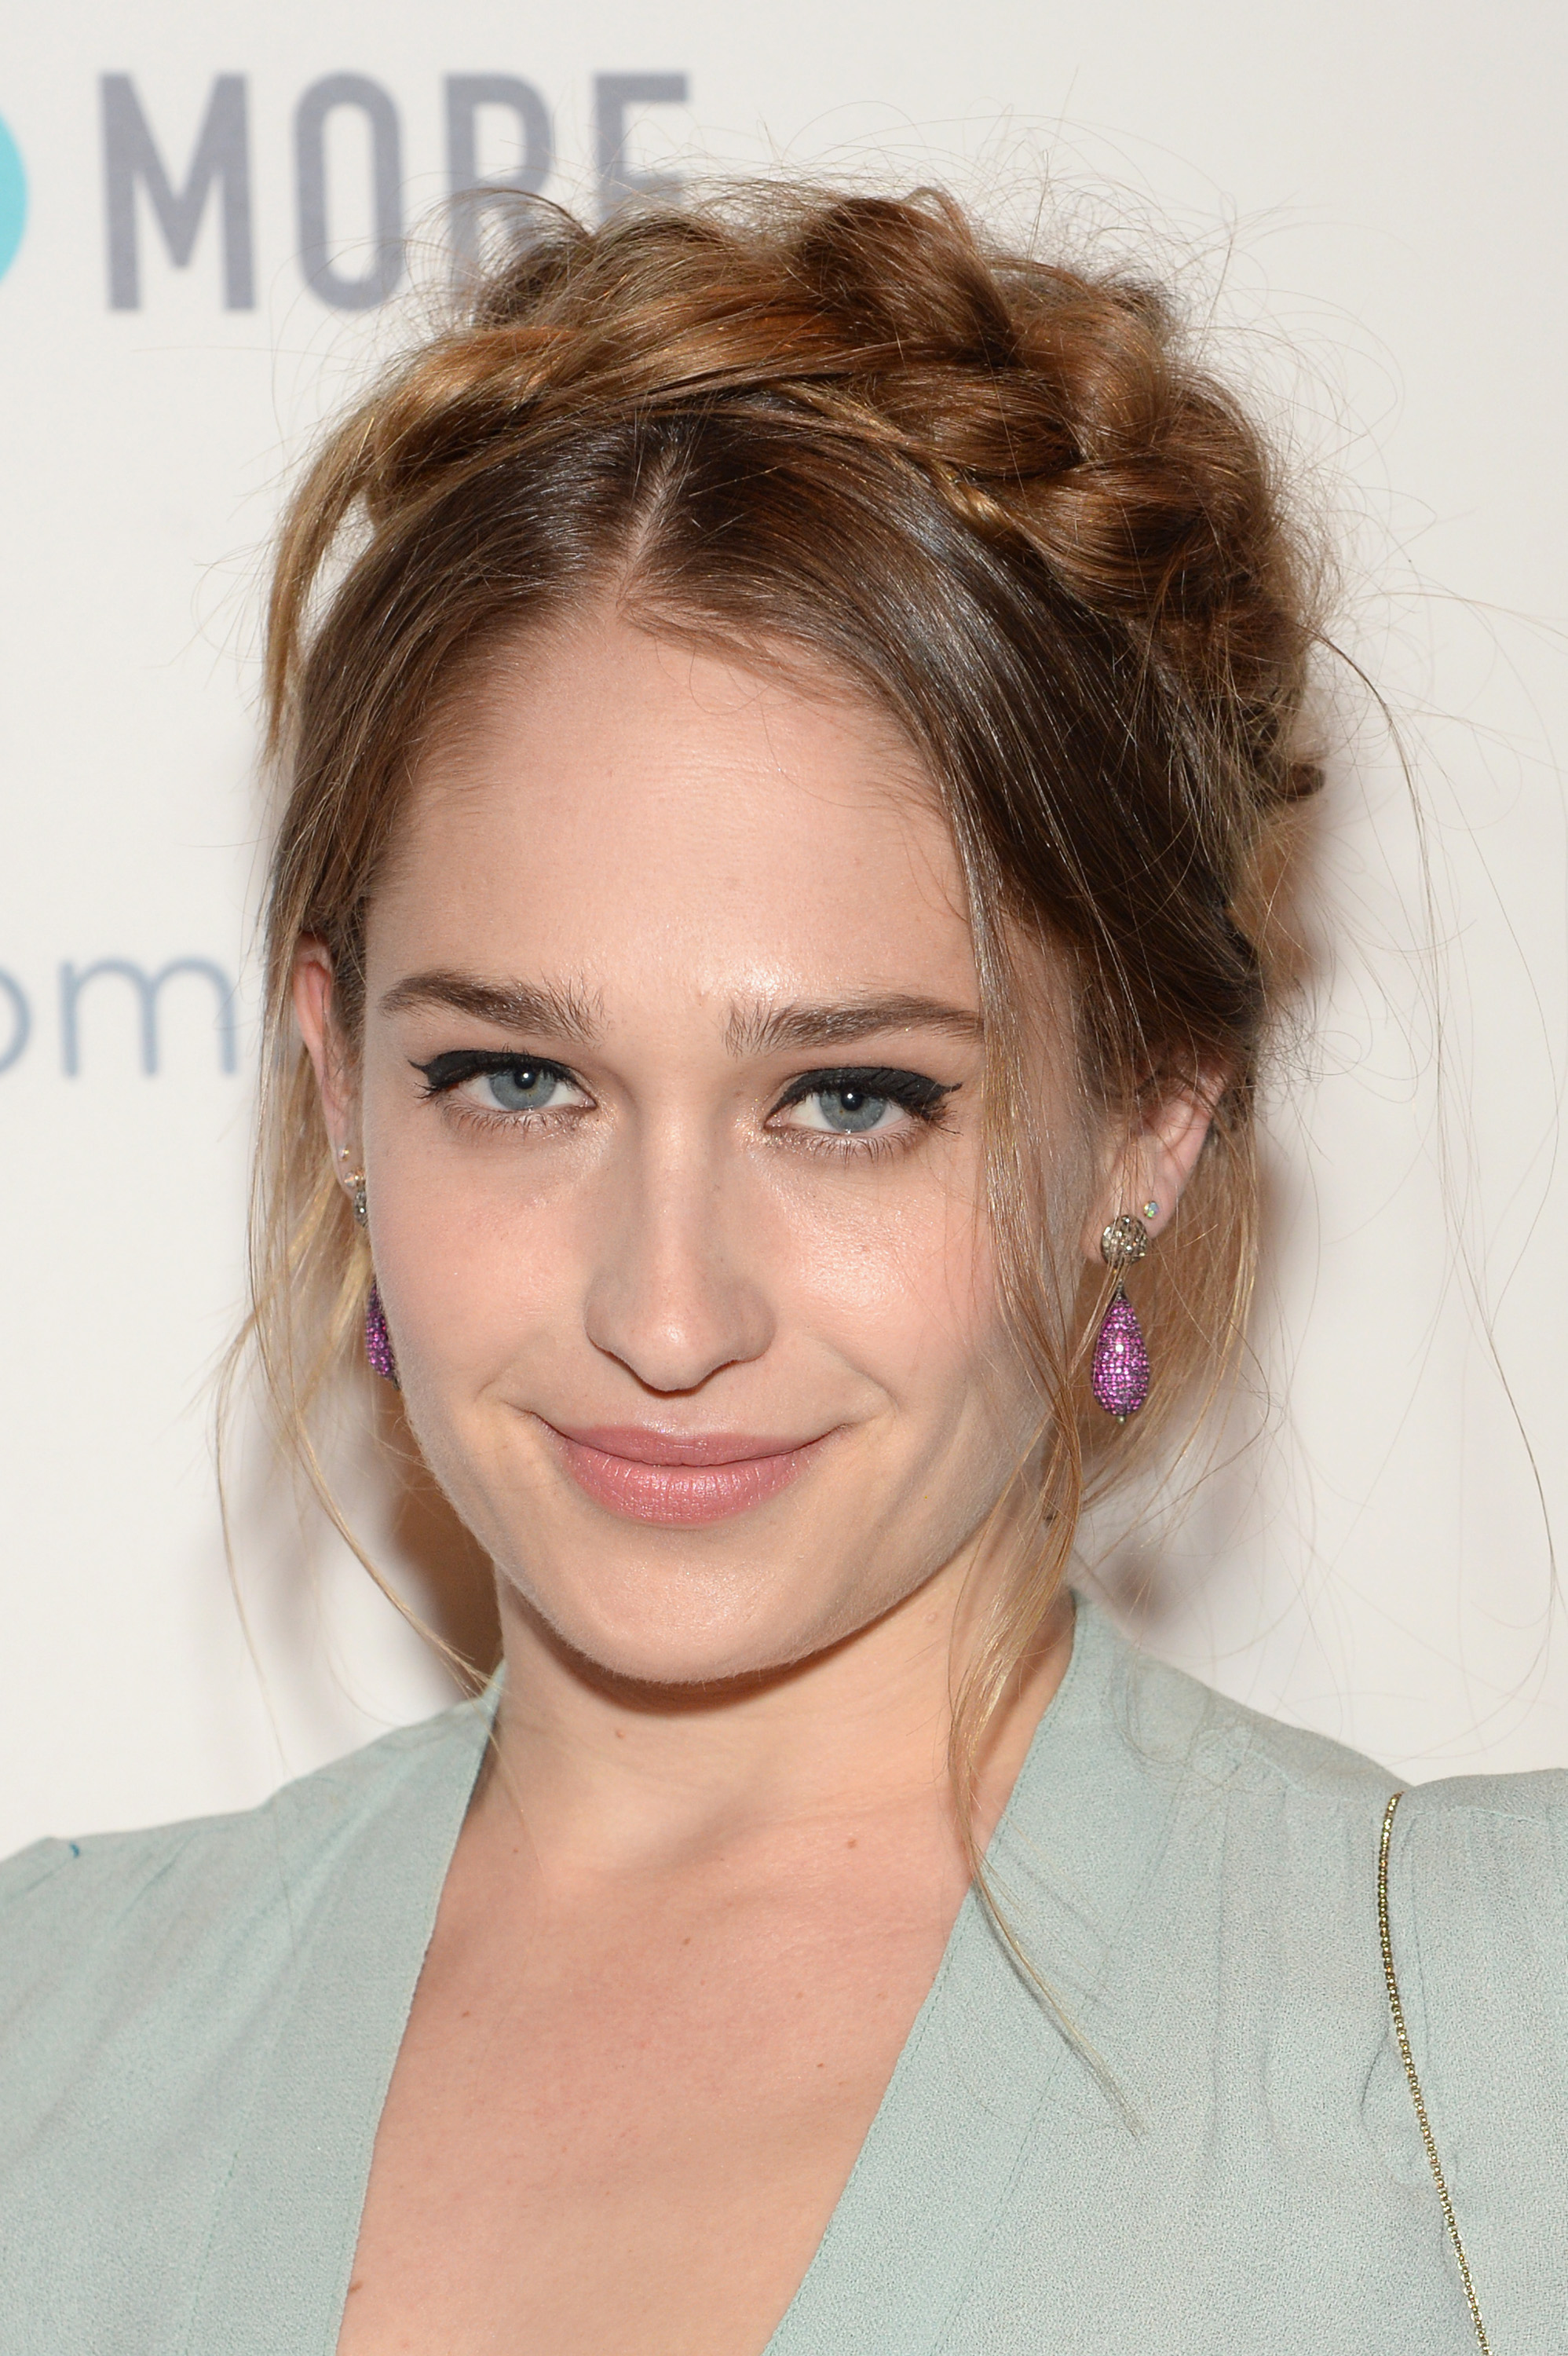 Jemima Kirke Dyes Hair Pink Like Perfect Cotton Candy So Let S Review All The Celebs Who Ve